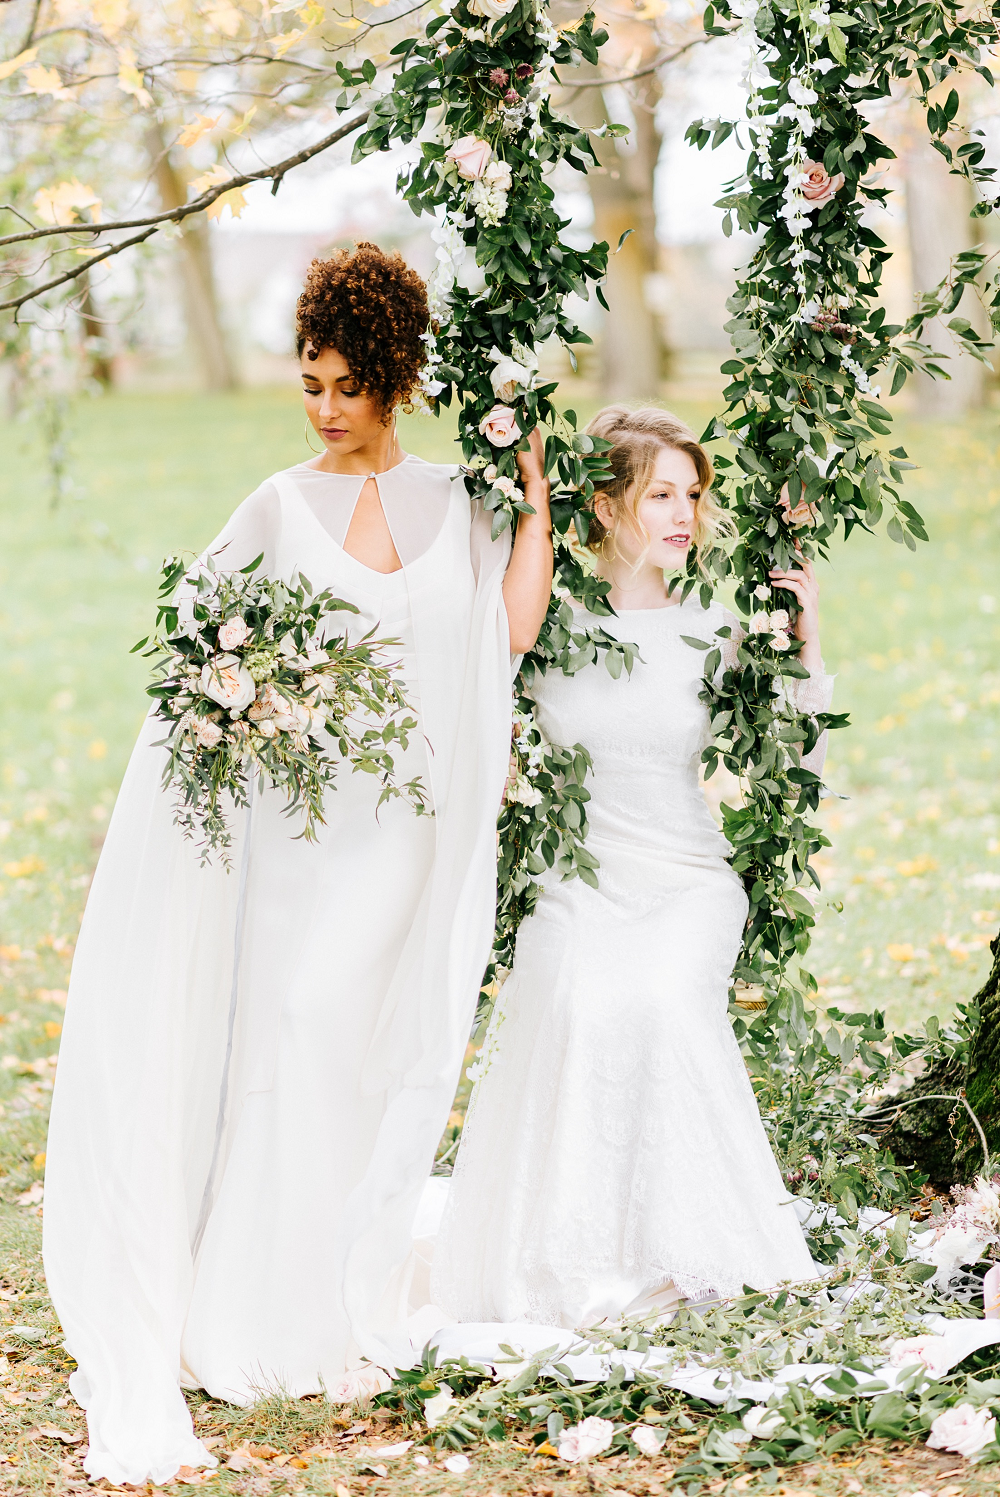 Lush Greenery Wedding Inspired Styled Shoot at Cornman Farms Compose Events